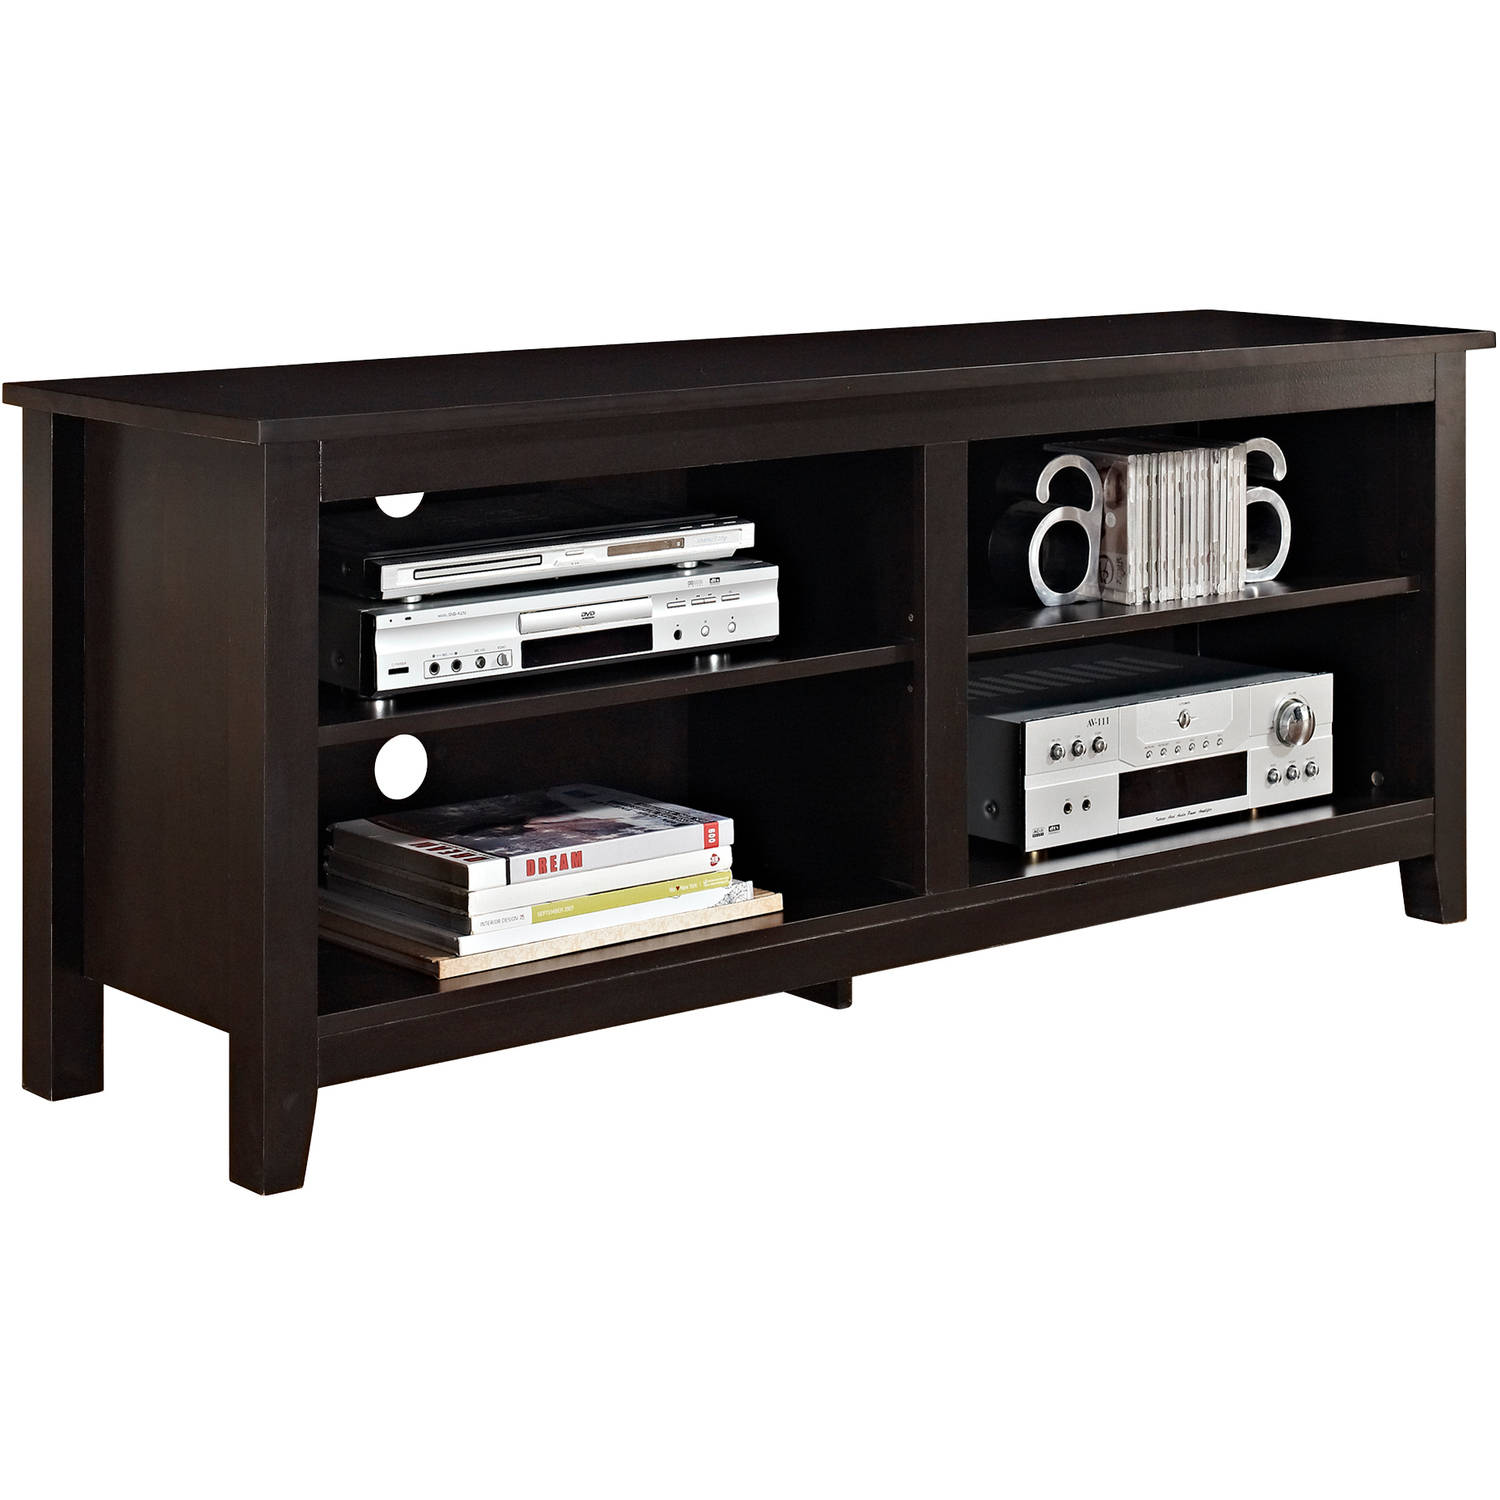 Tv Stand Up To 60 Home Media Console Furniture Storage Shelves